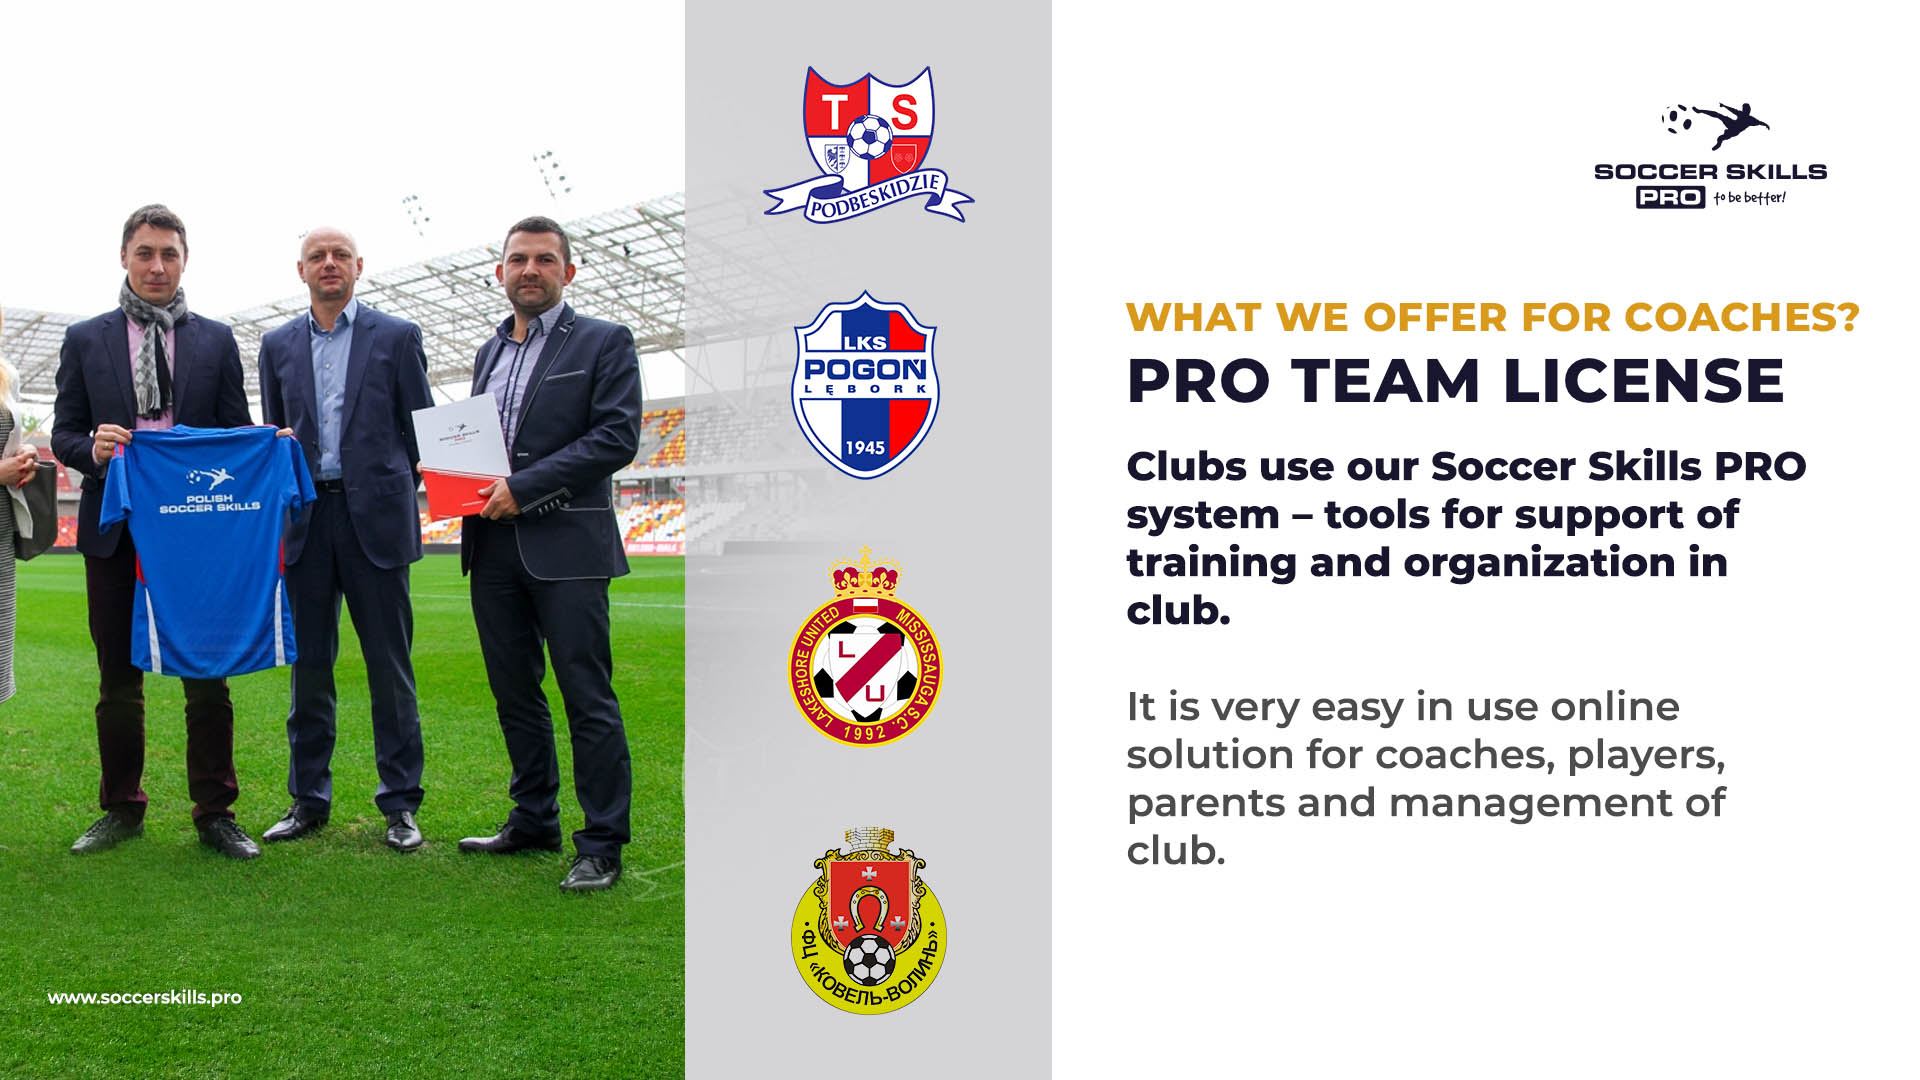 Soccer Skills PRO team license